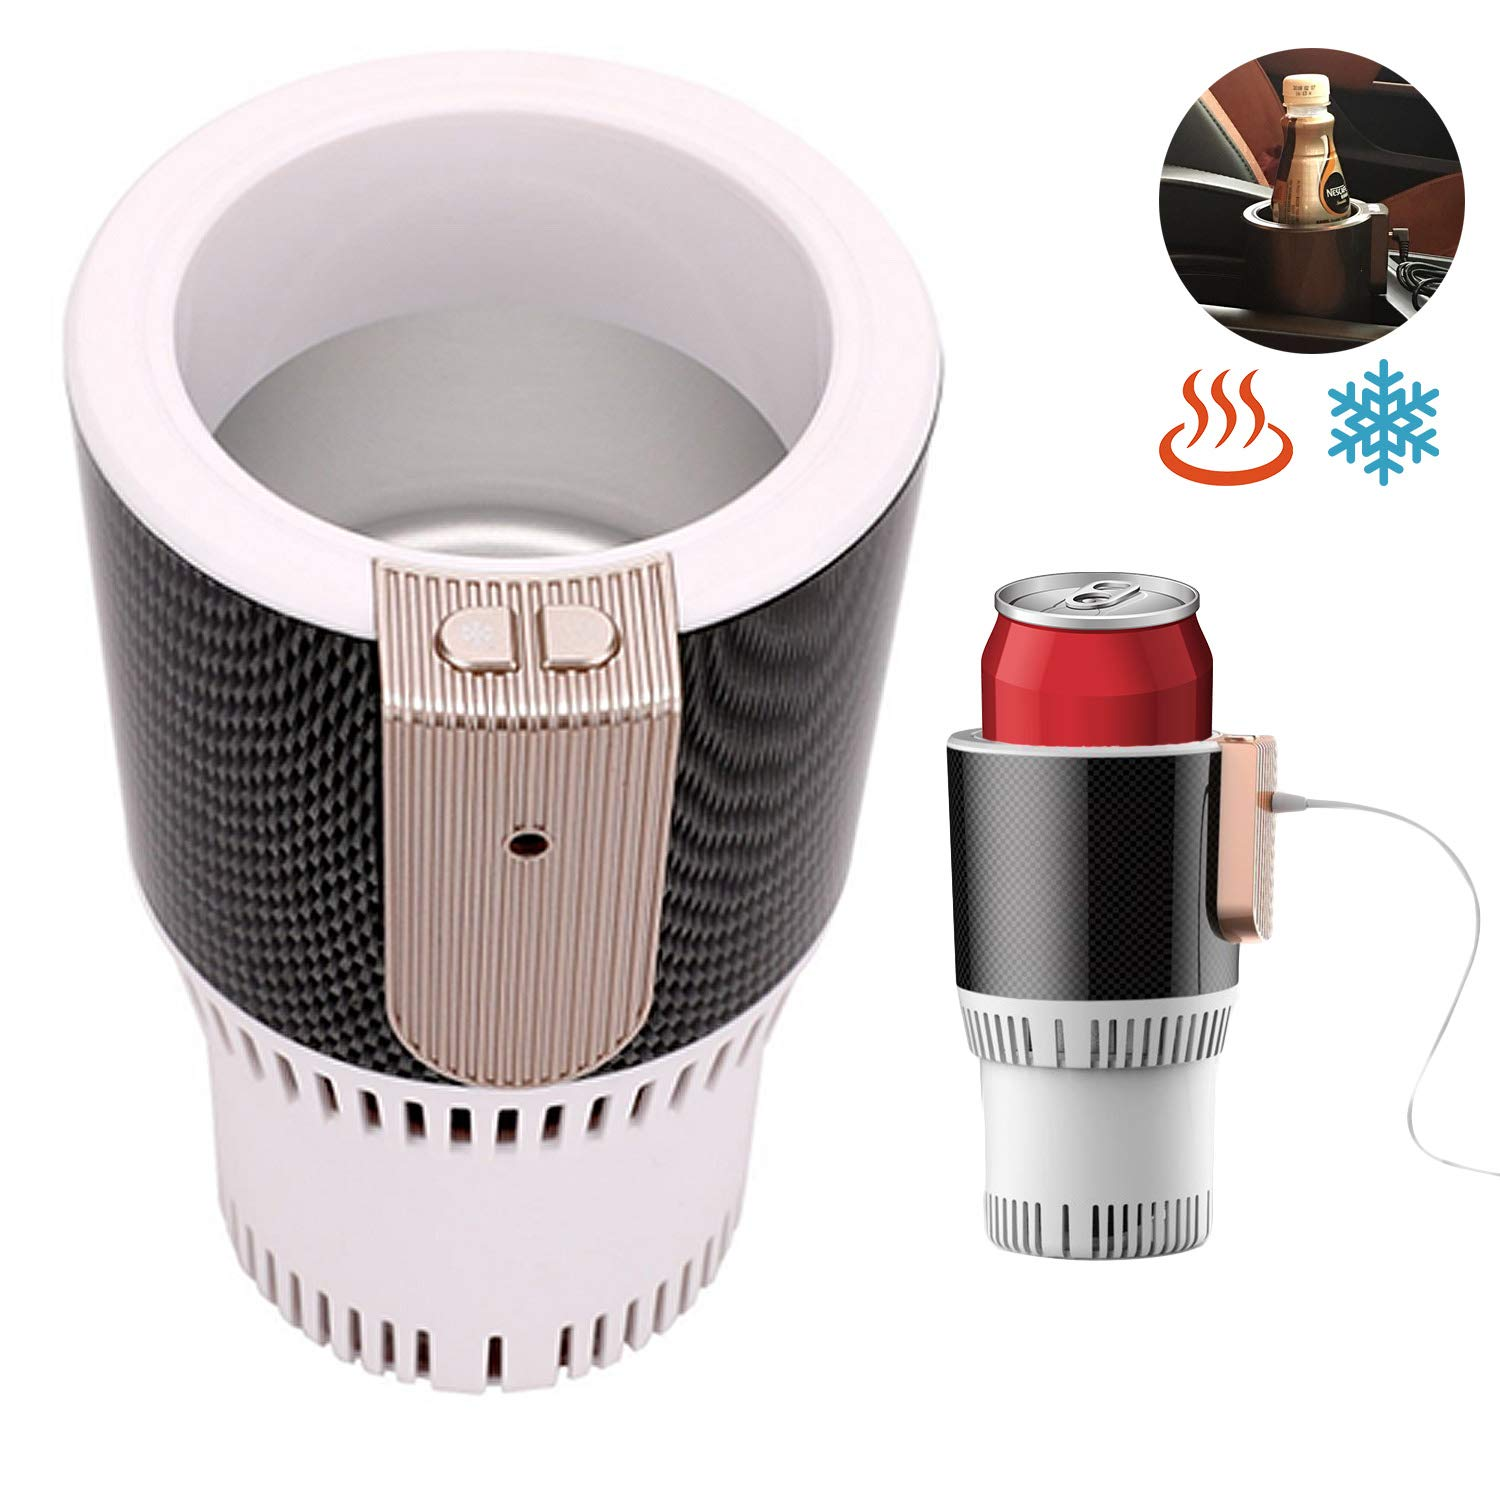 Smart Car Cup | Car Coffee Warmer/cooler Cup